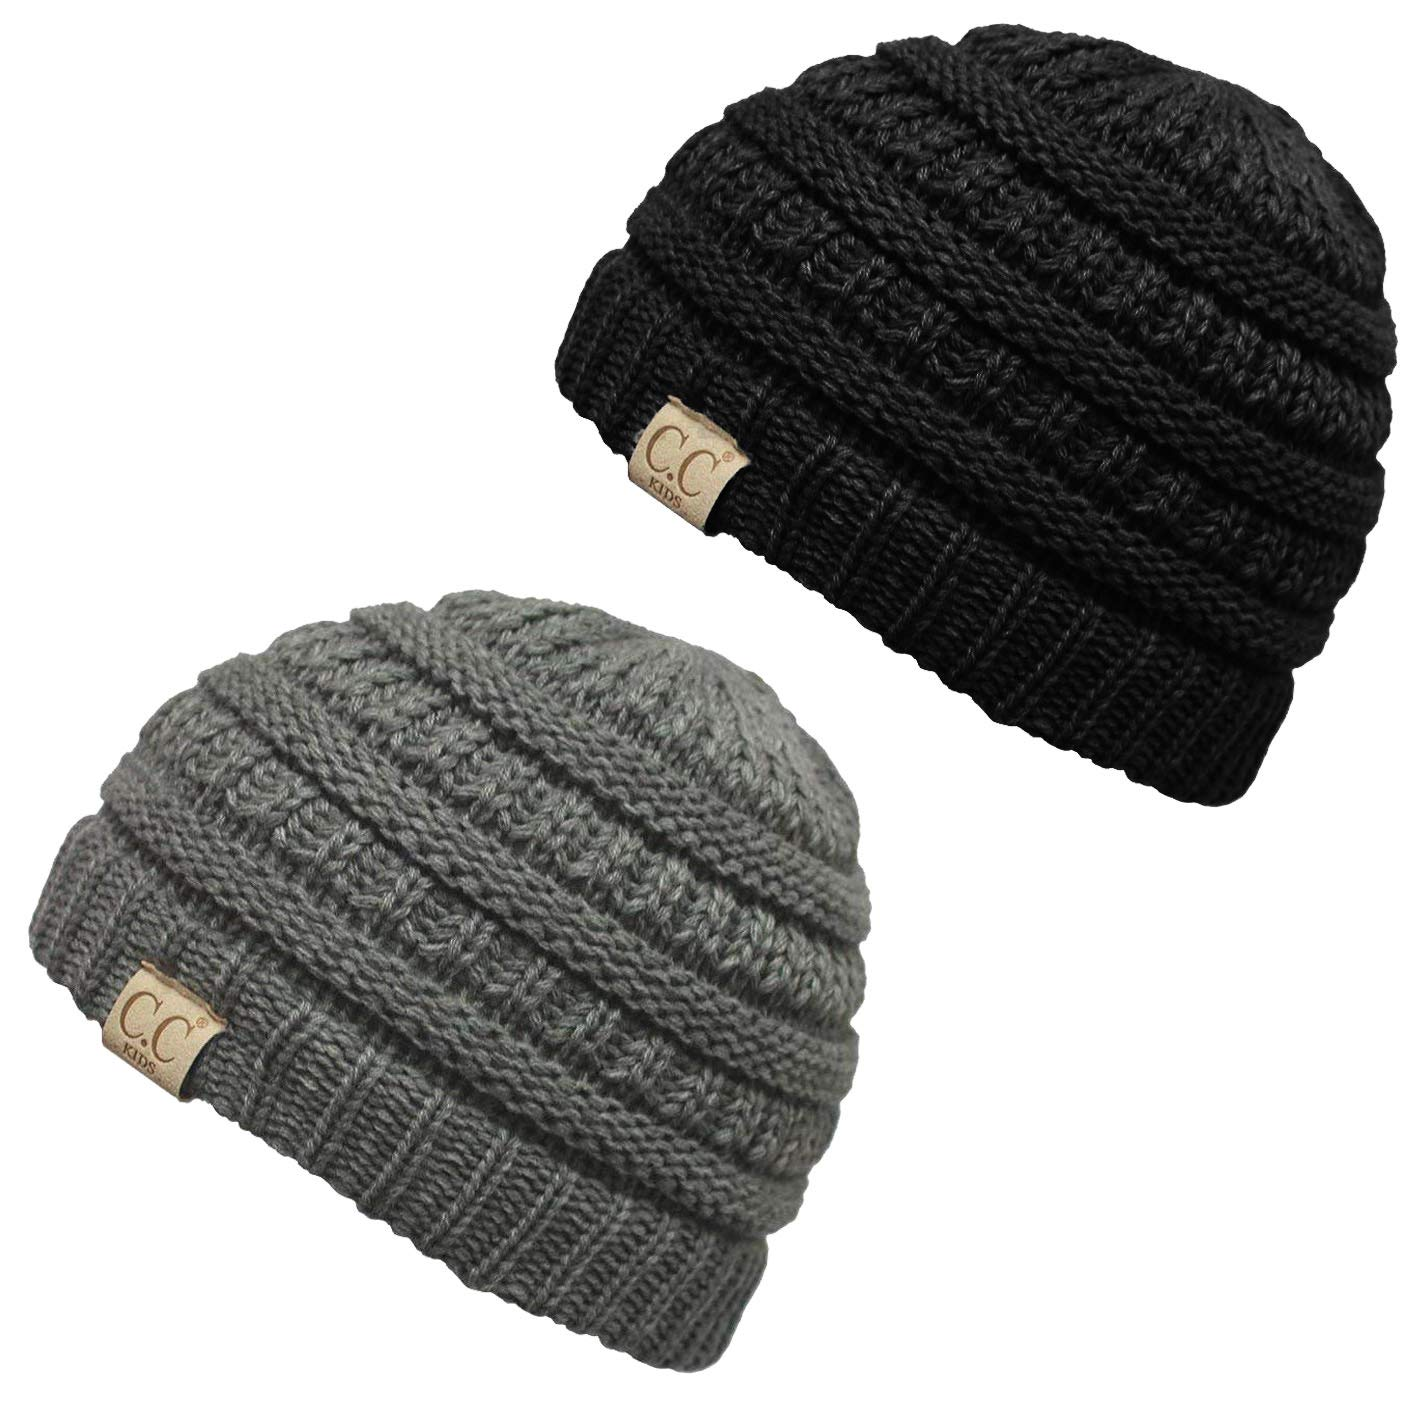 H-3847-2-0651 Kids Beanie (NO POM) Bundle - 1 Black, 1 Grey (2 Pack)